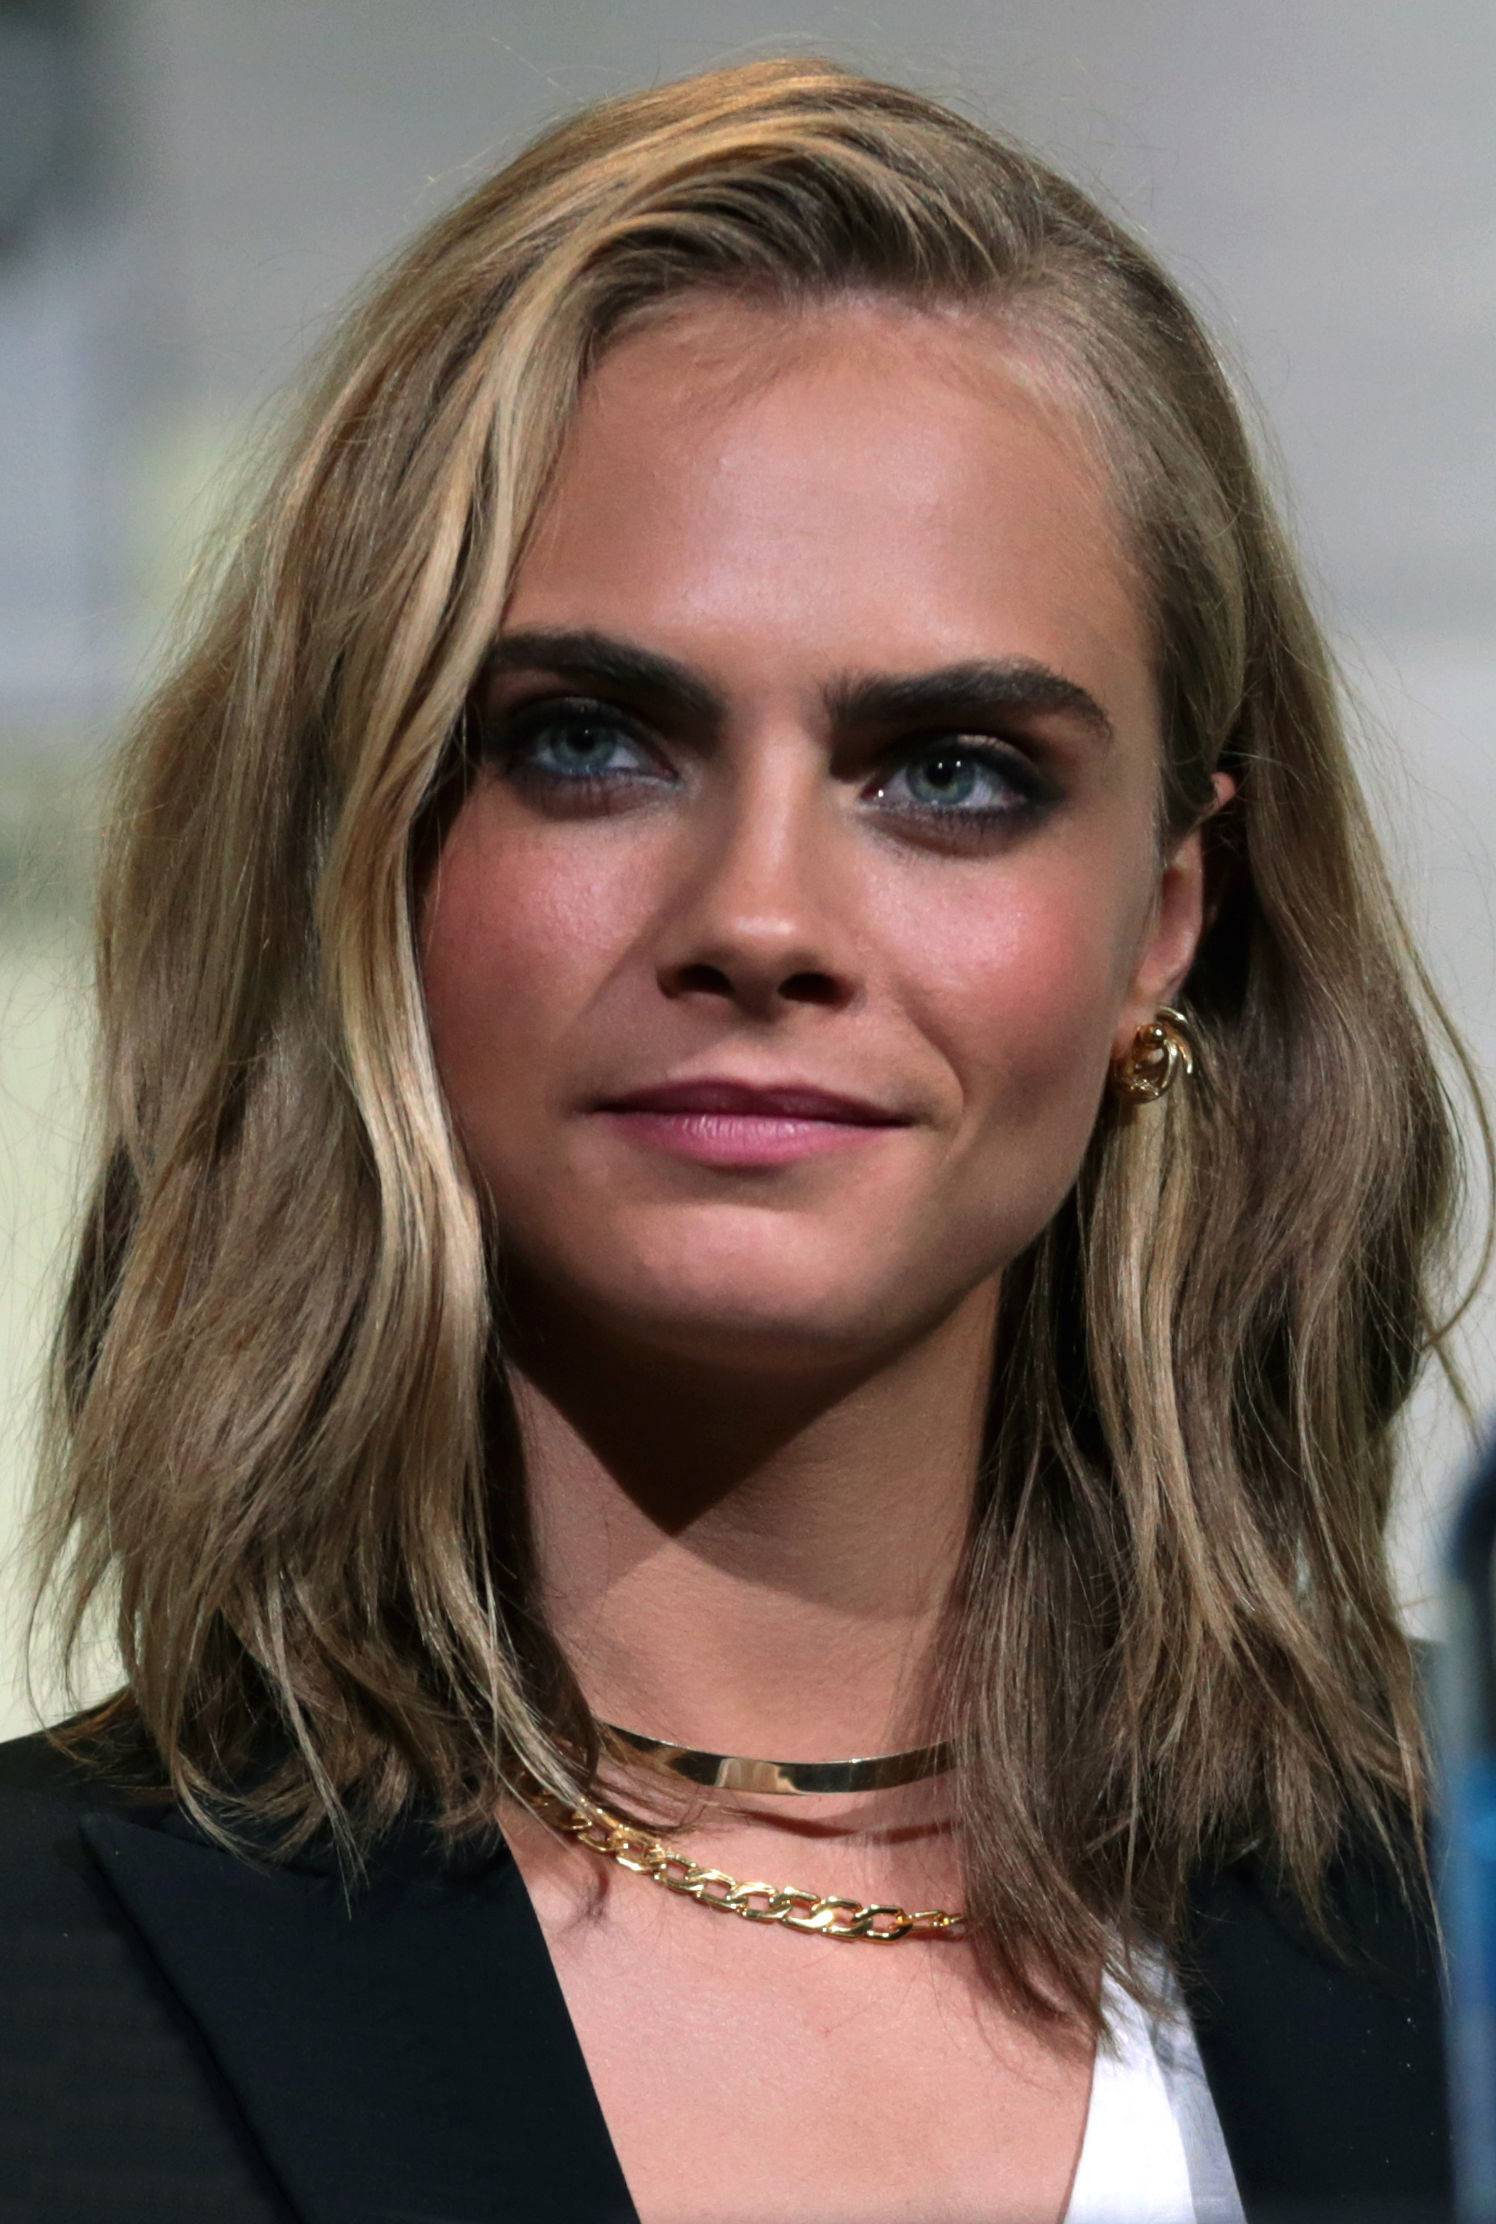 Photo of Cara Delevingne: English fashion model, actress and singer